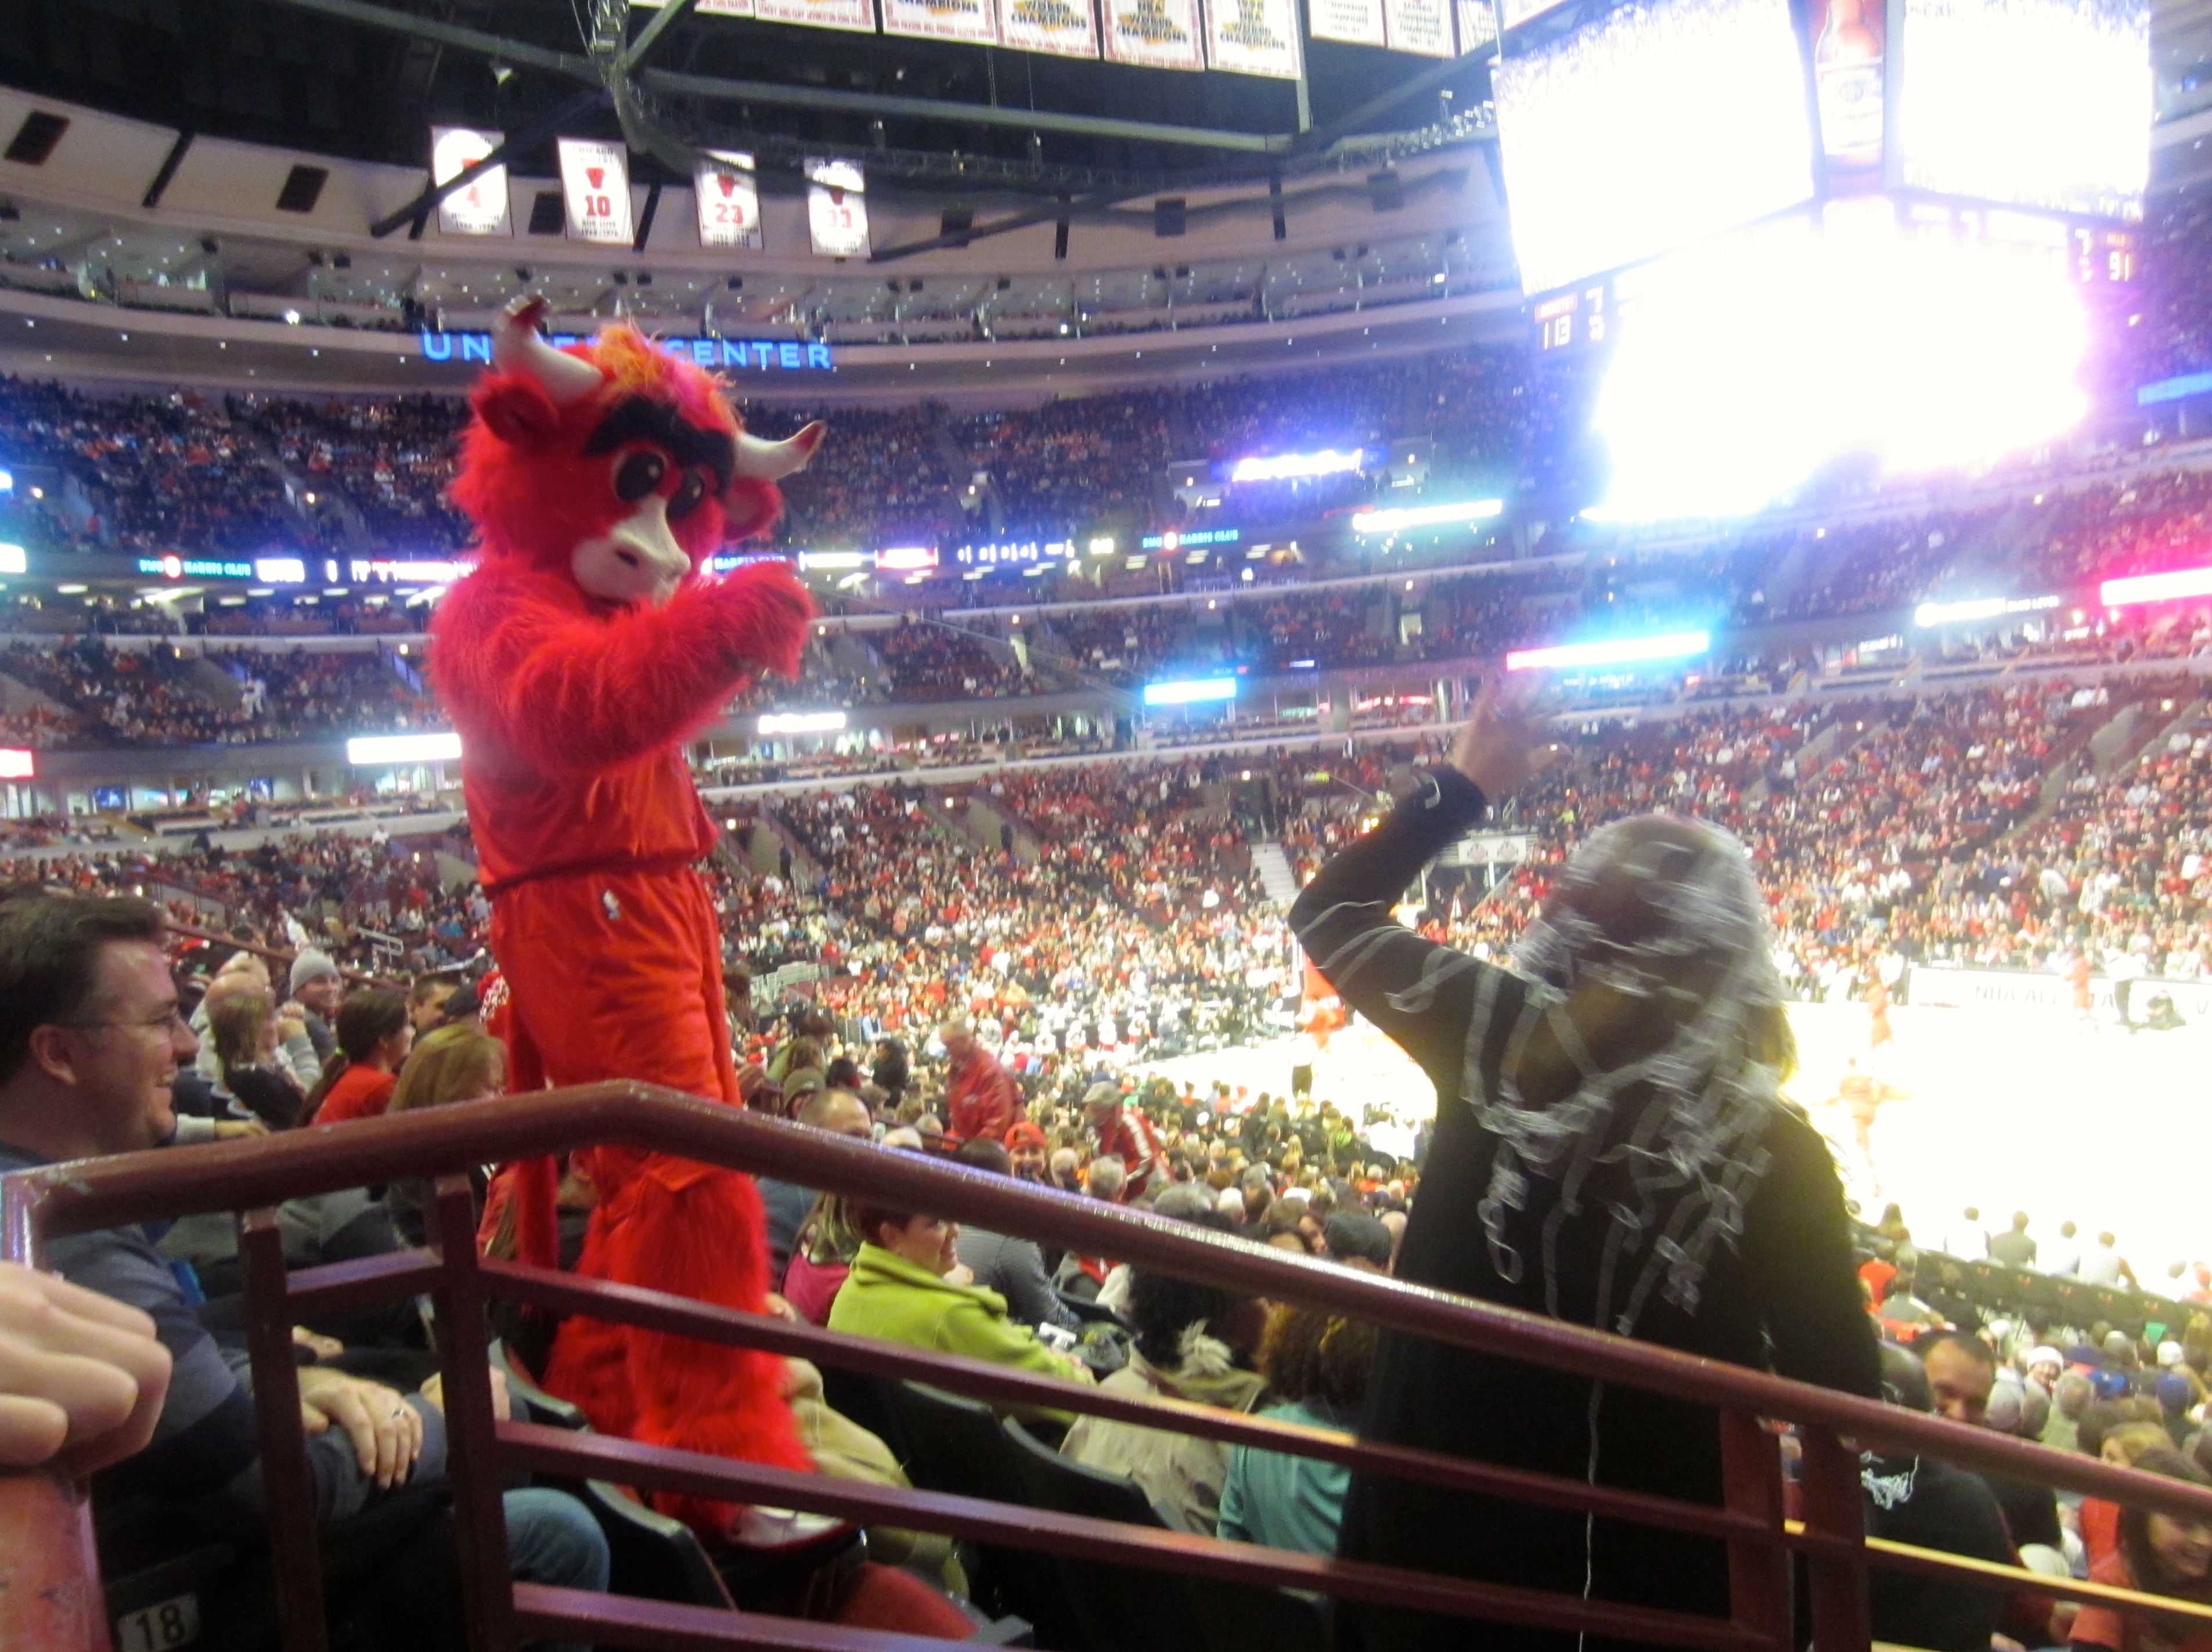 Benny the Bull silly string